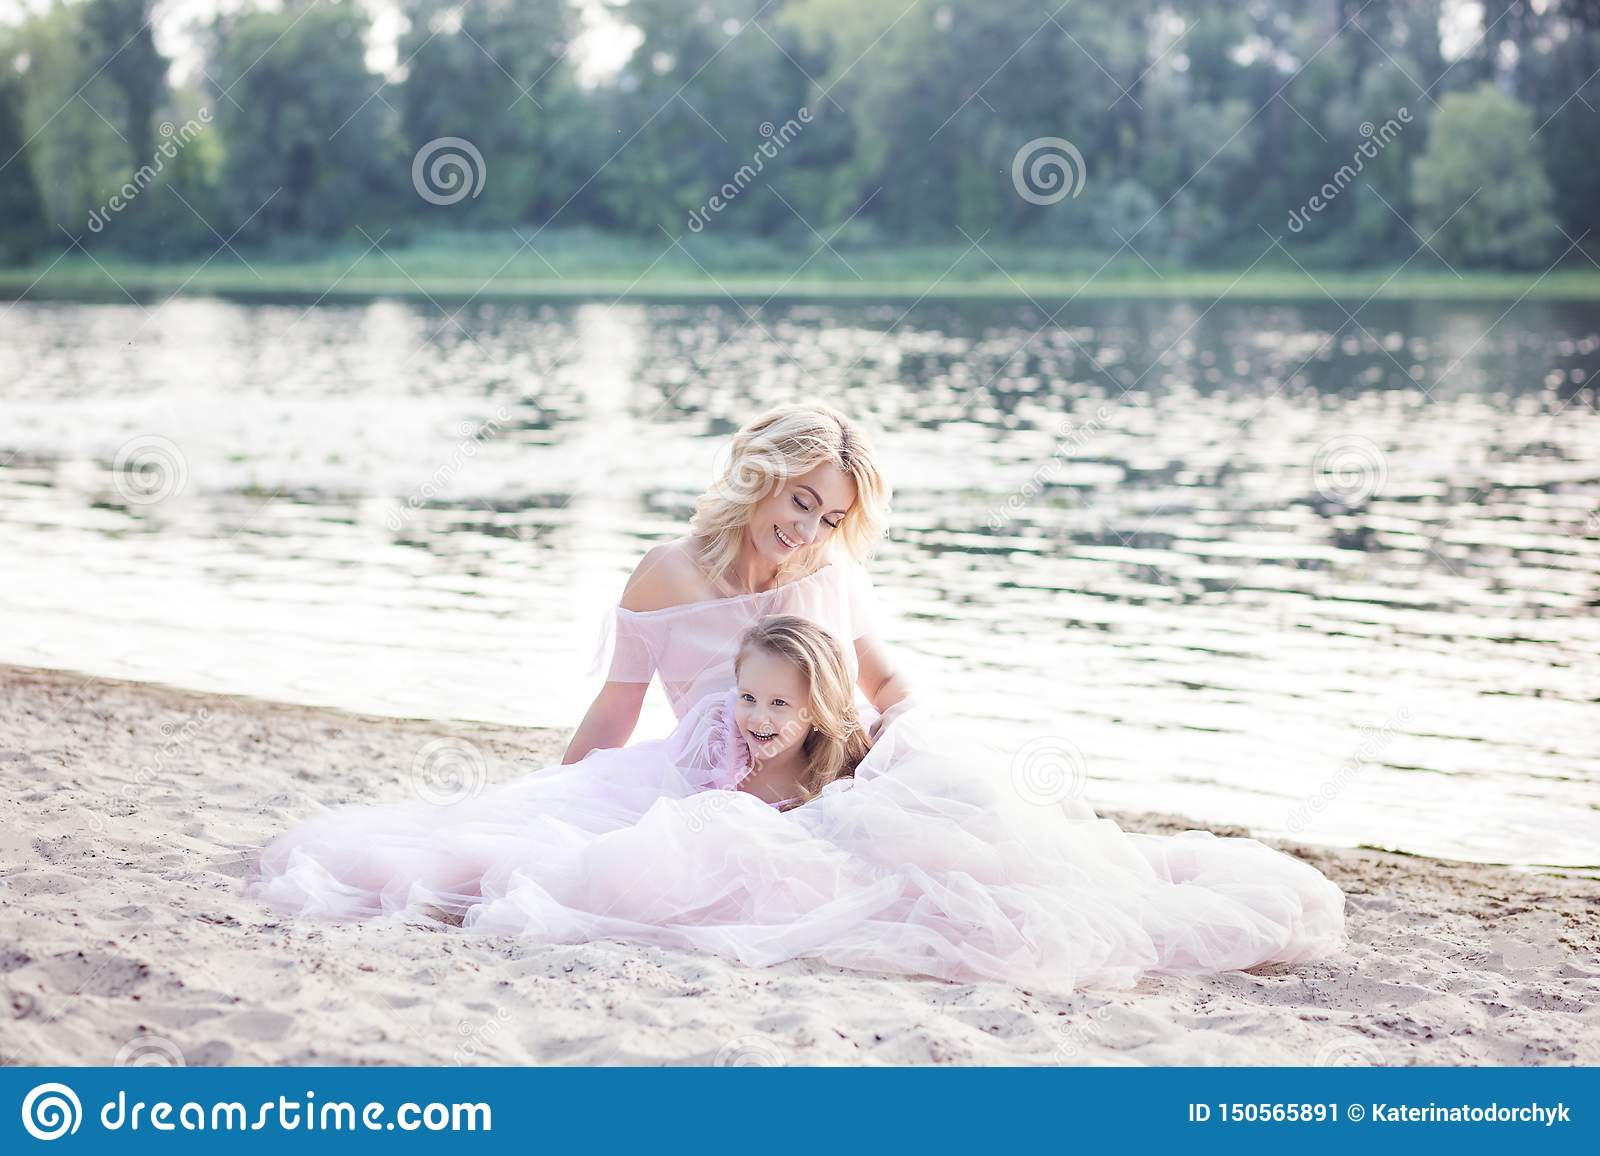 Mom plays with her child on a vacation by the lake. Family lifestyle and love concept. Mother and daughter having tender moments o